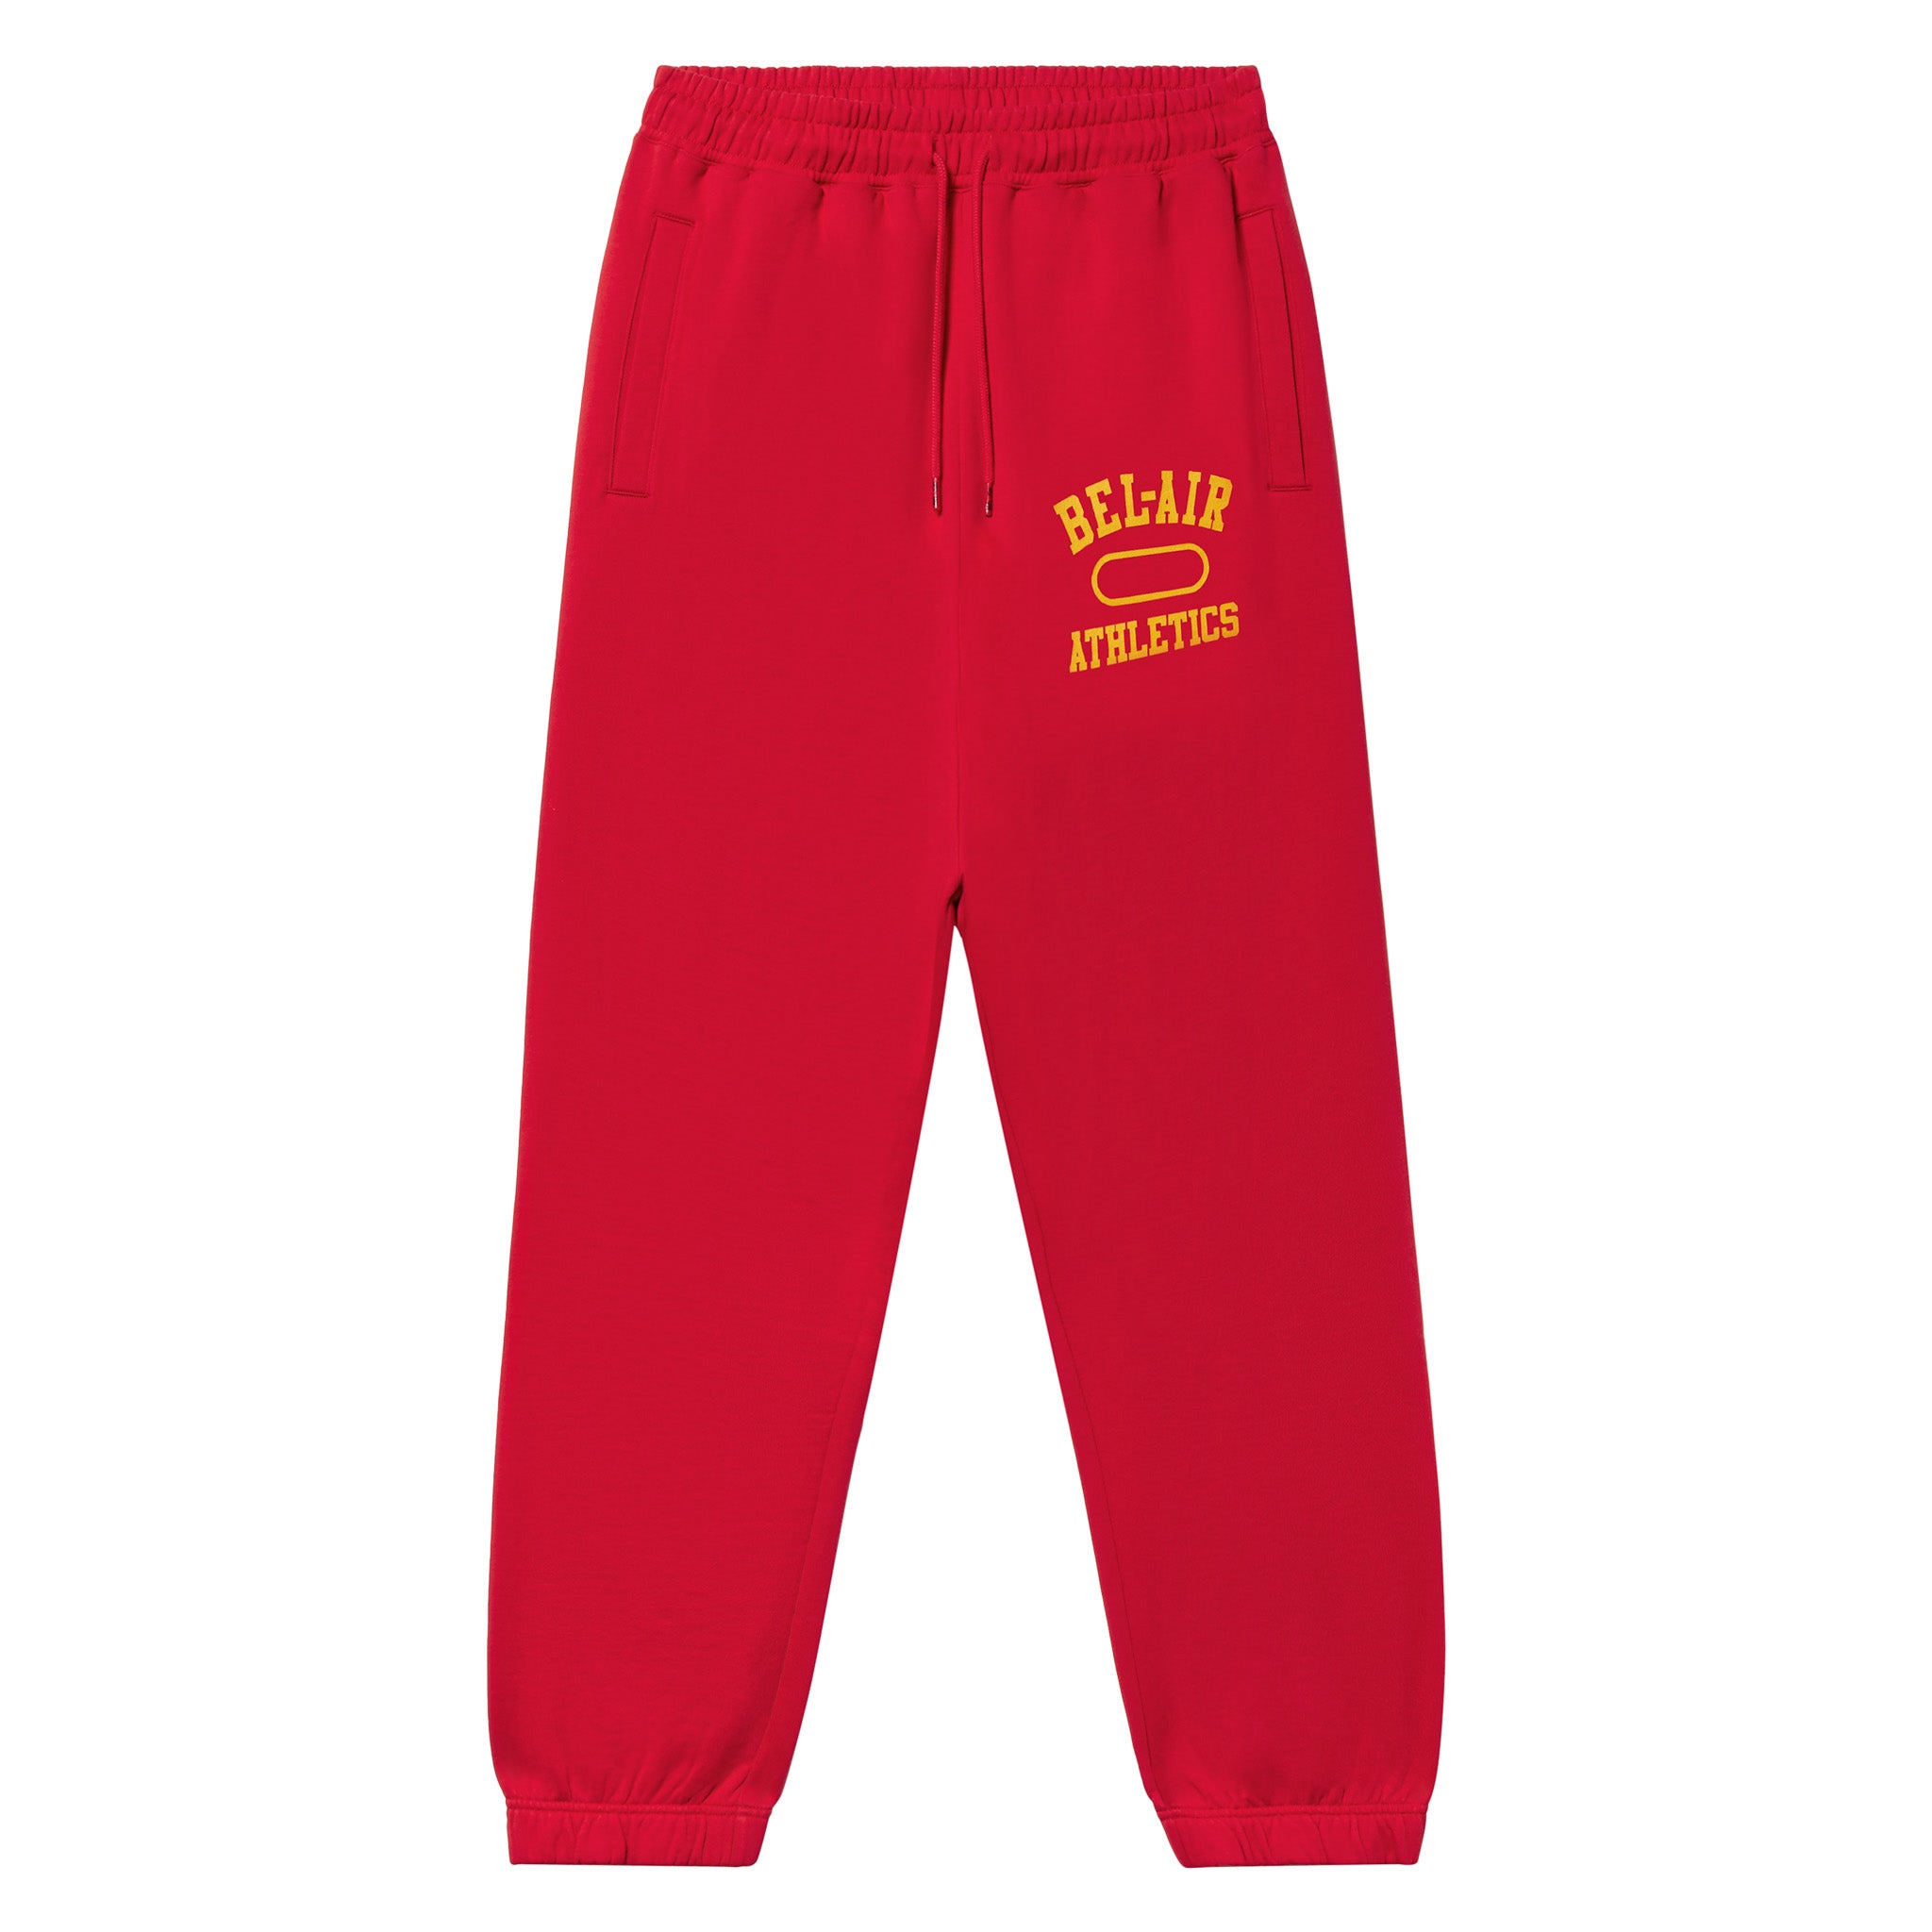 Gym Logo Sweatpant - Academy red with Collegiate Gold print